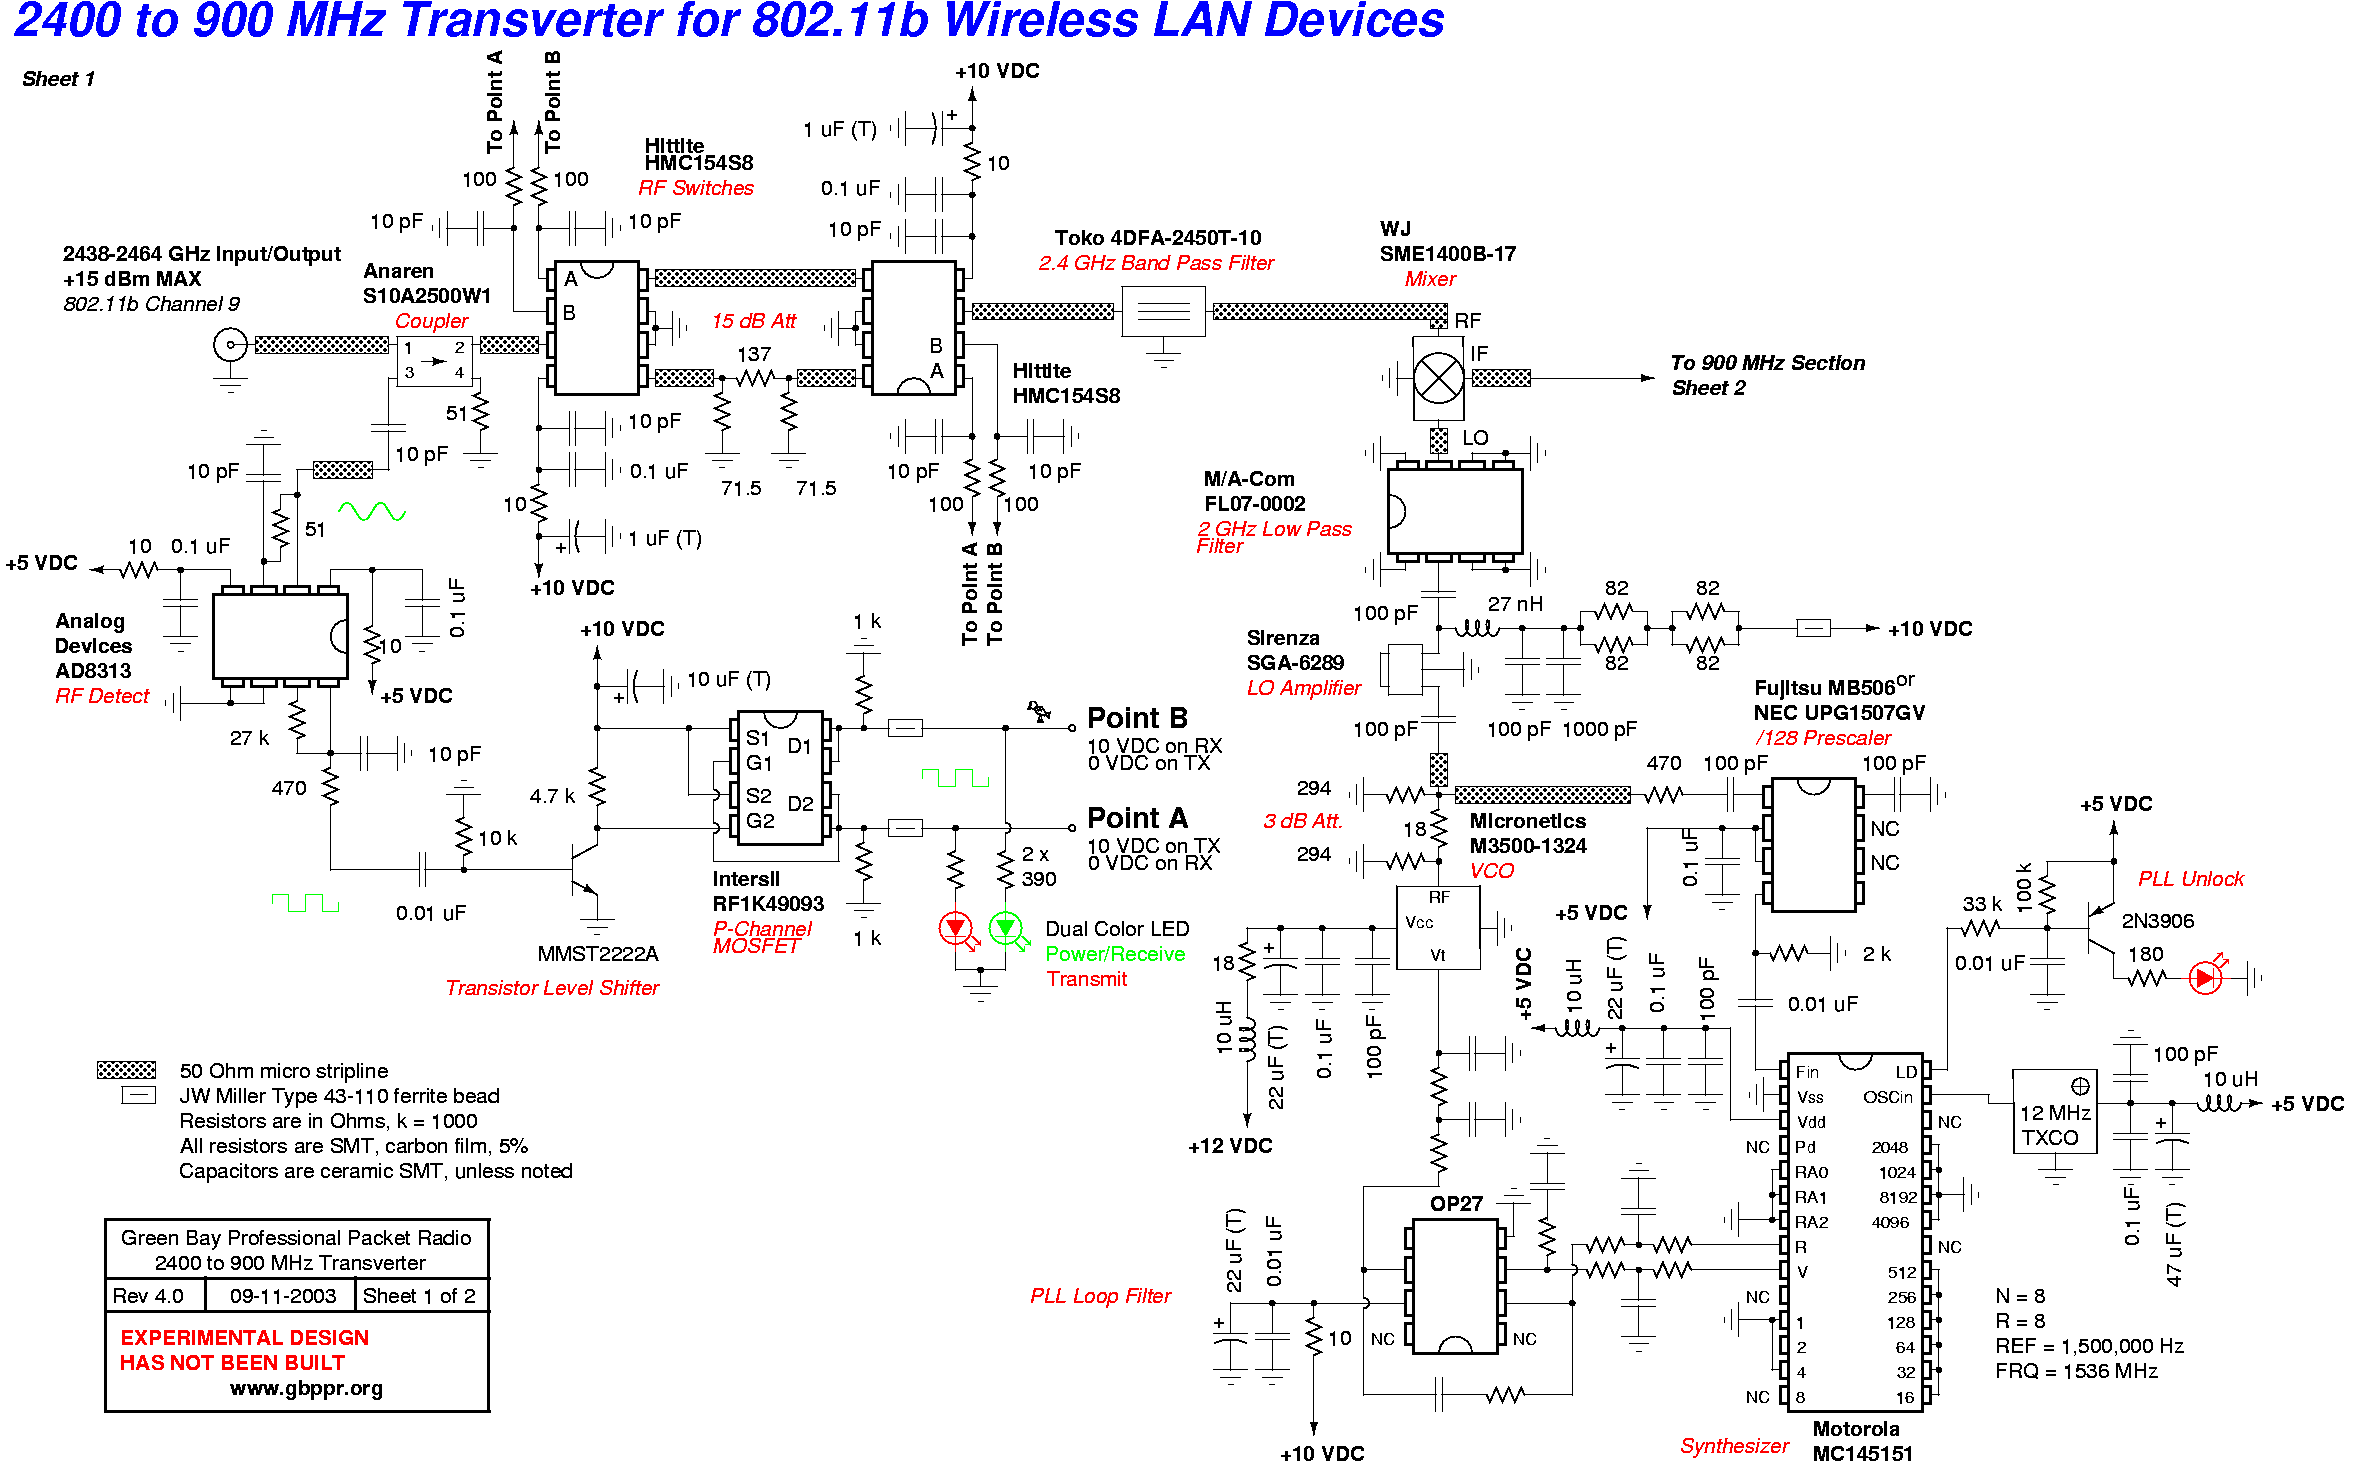 GBPPR Frequency Transverters for Wireless LAN Devices